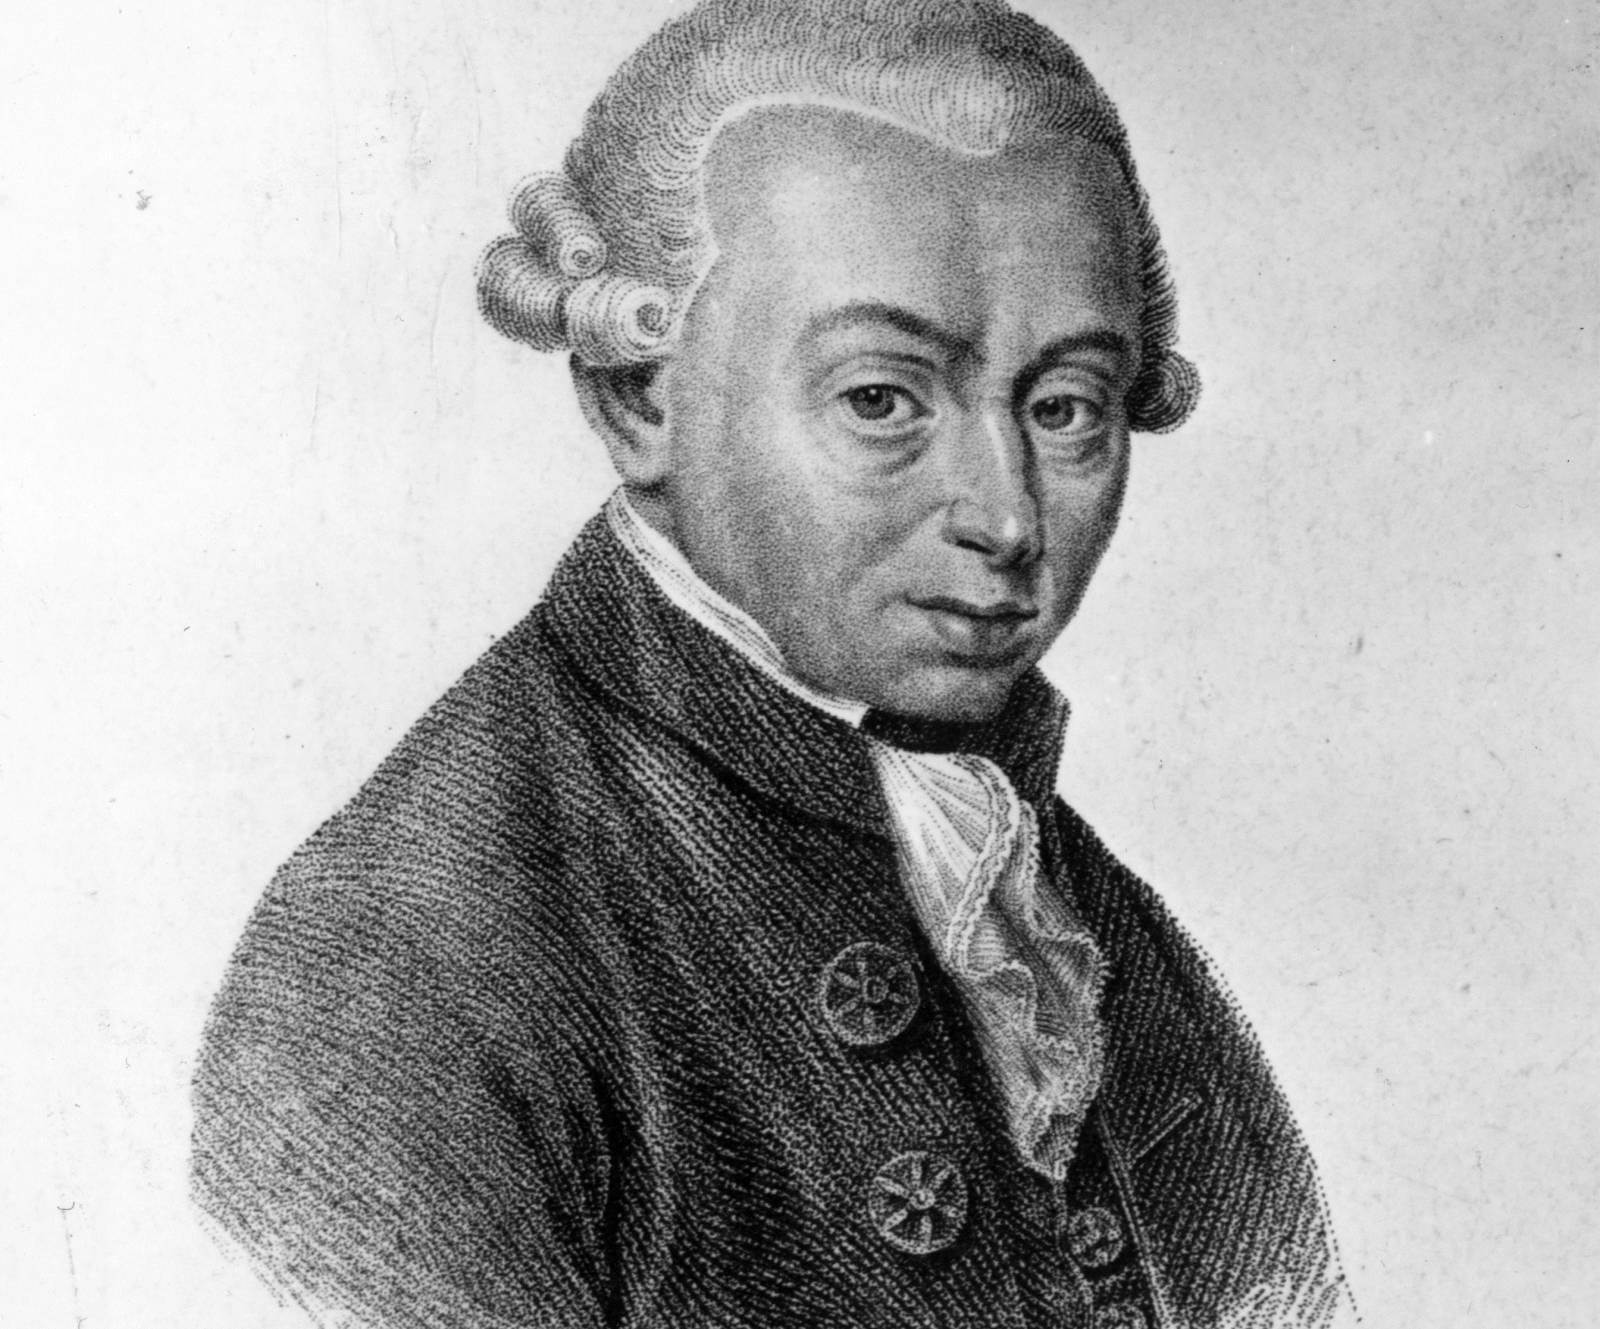 German philosopher Immanuel Kant